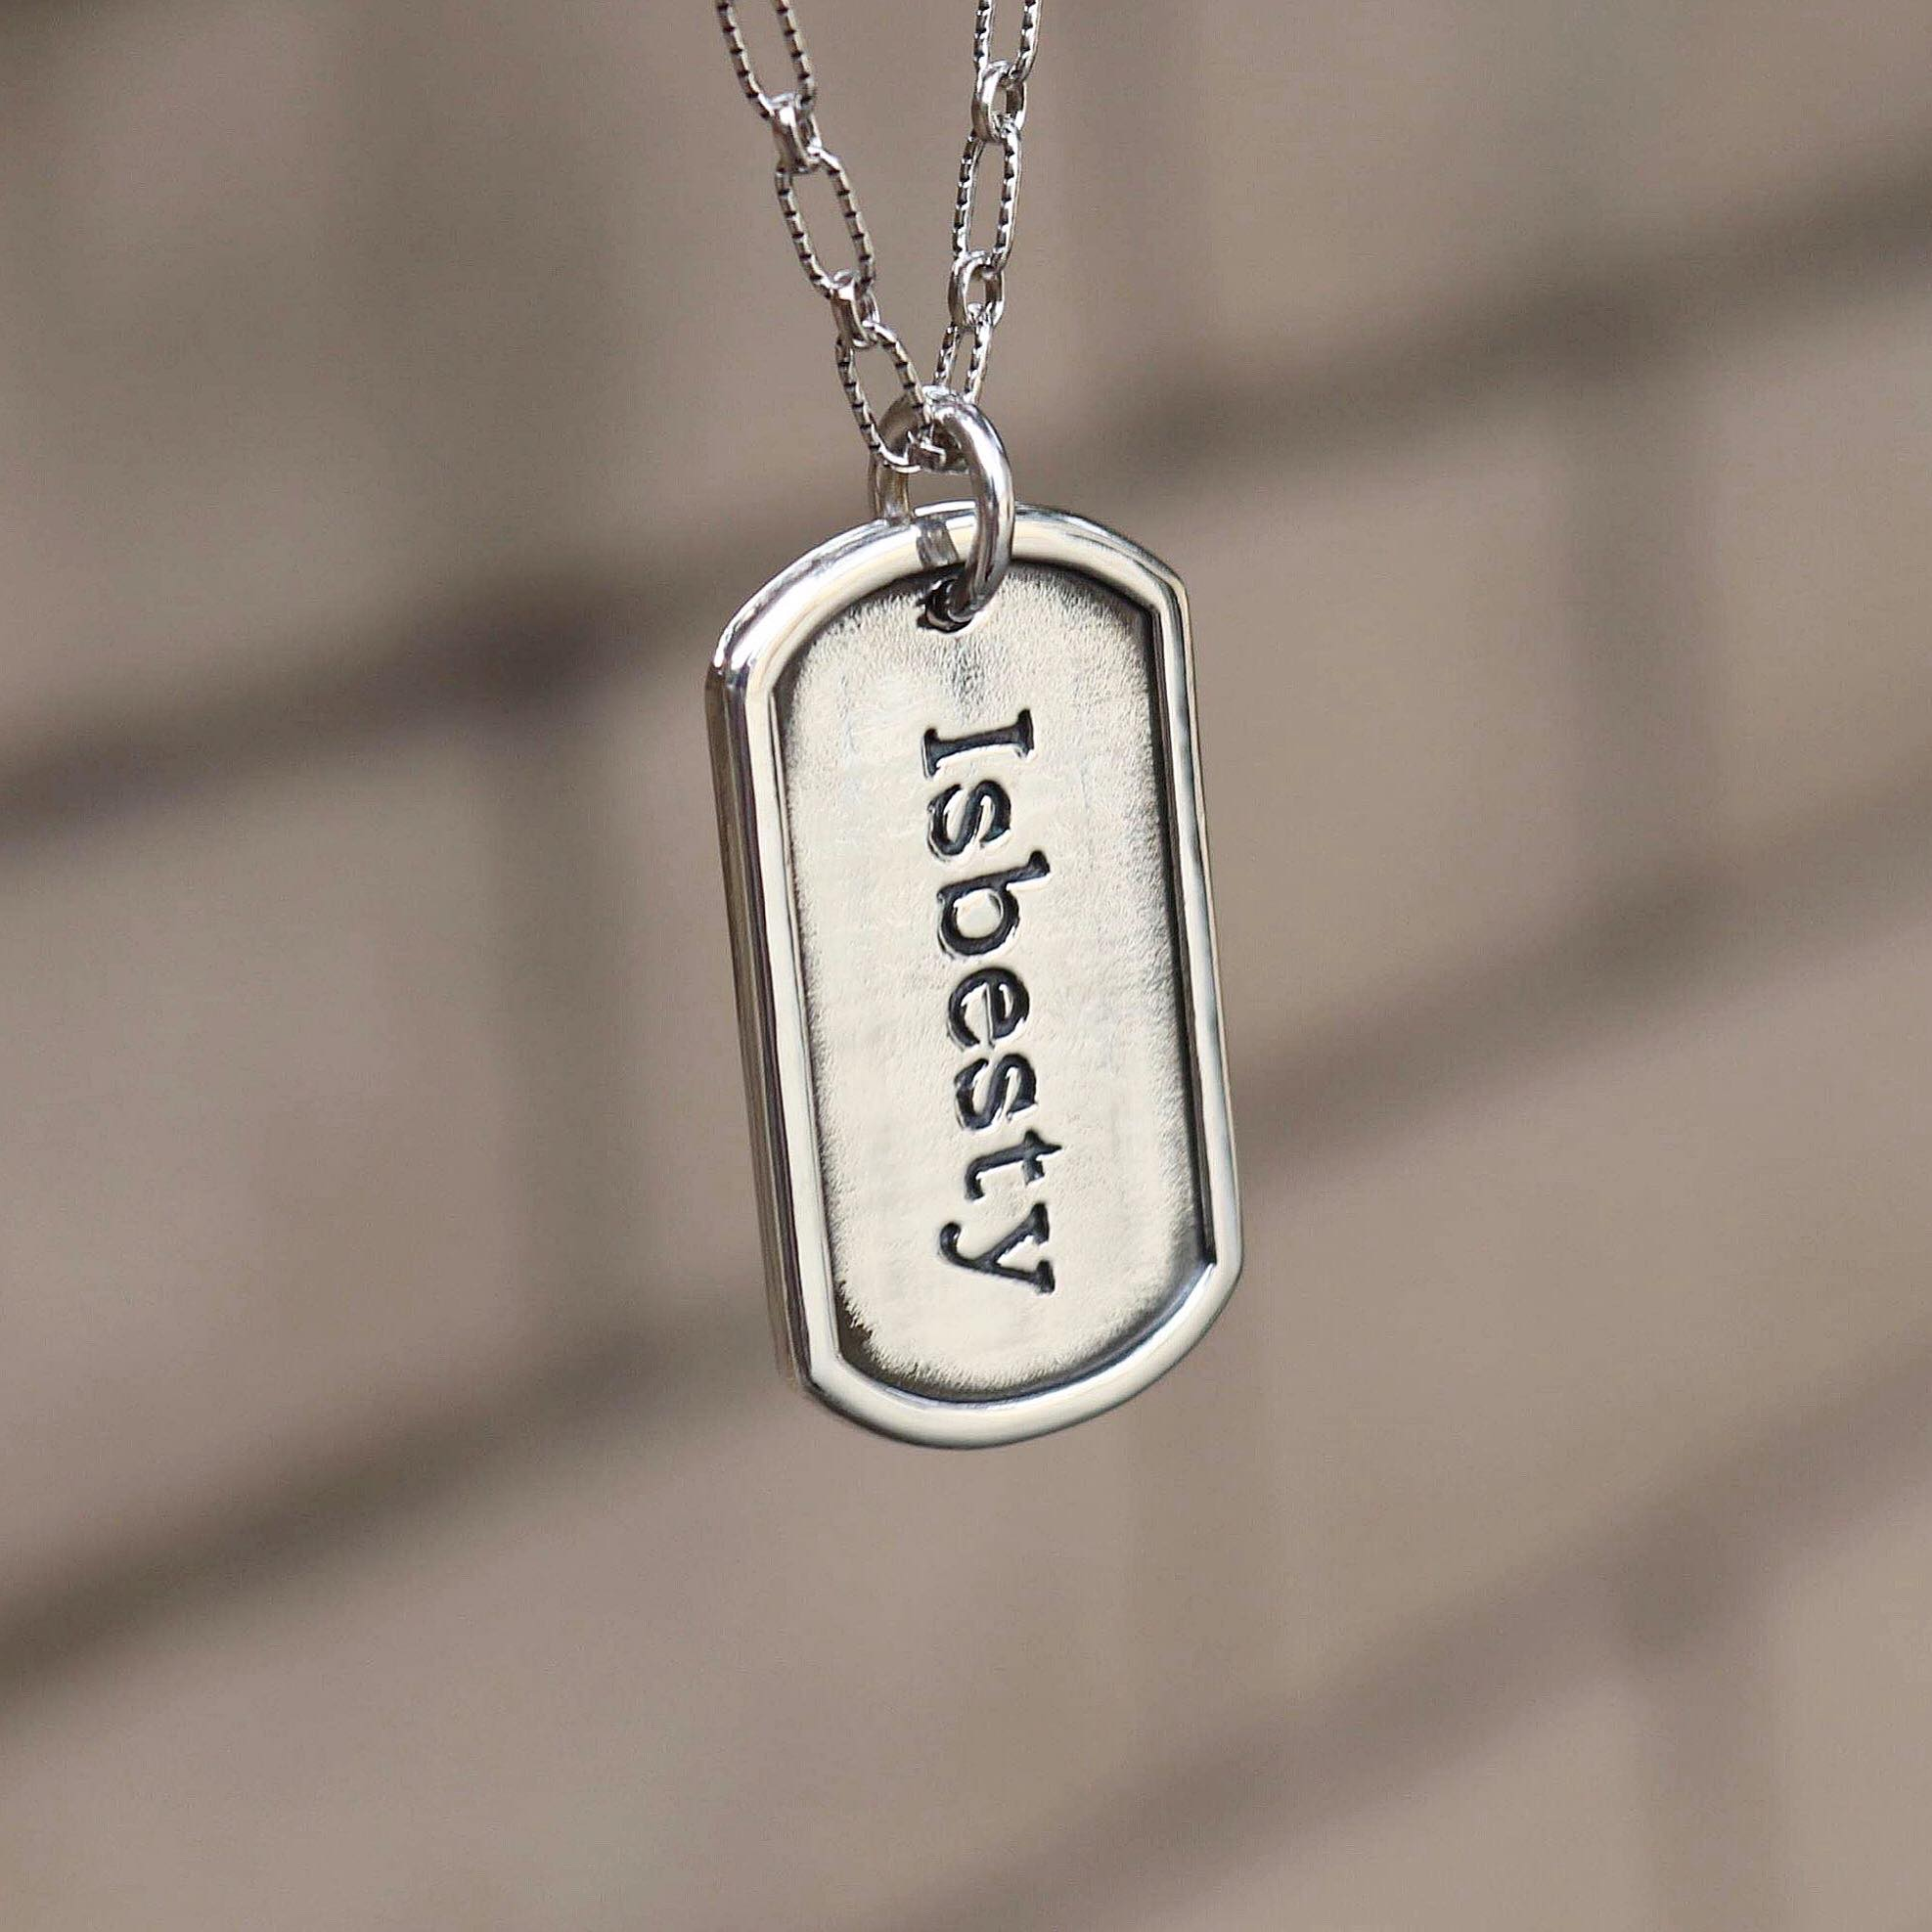 The W Brothers hand-crafted 925 Sterling Silver Dog Tag available for engravings on the front & back, available in premium sterling silver or layered with real 18k Gold & Rose Gold plating. Shop your dog tag or solid gold jewelry options only at thewbros.com